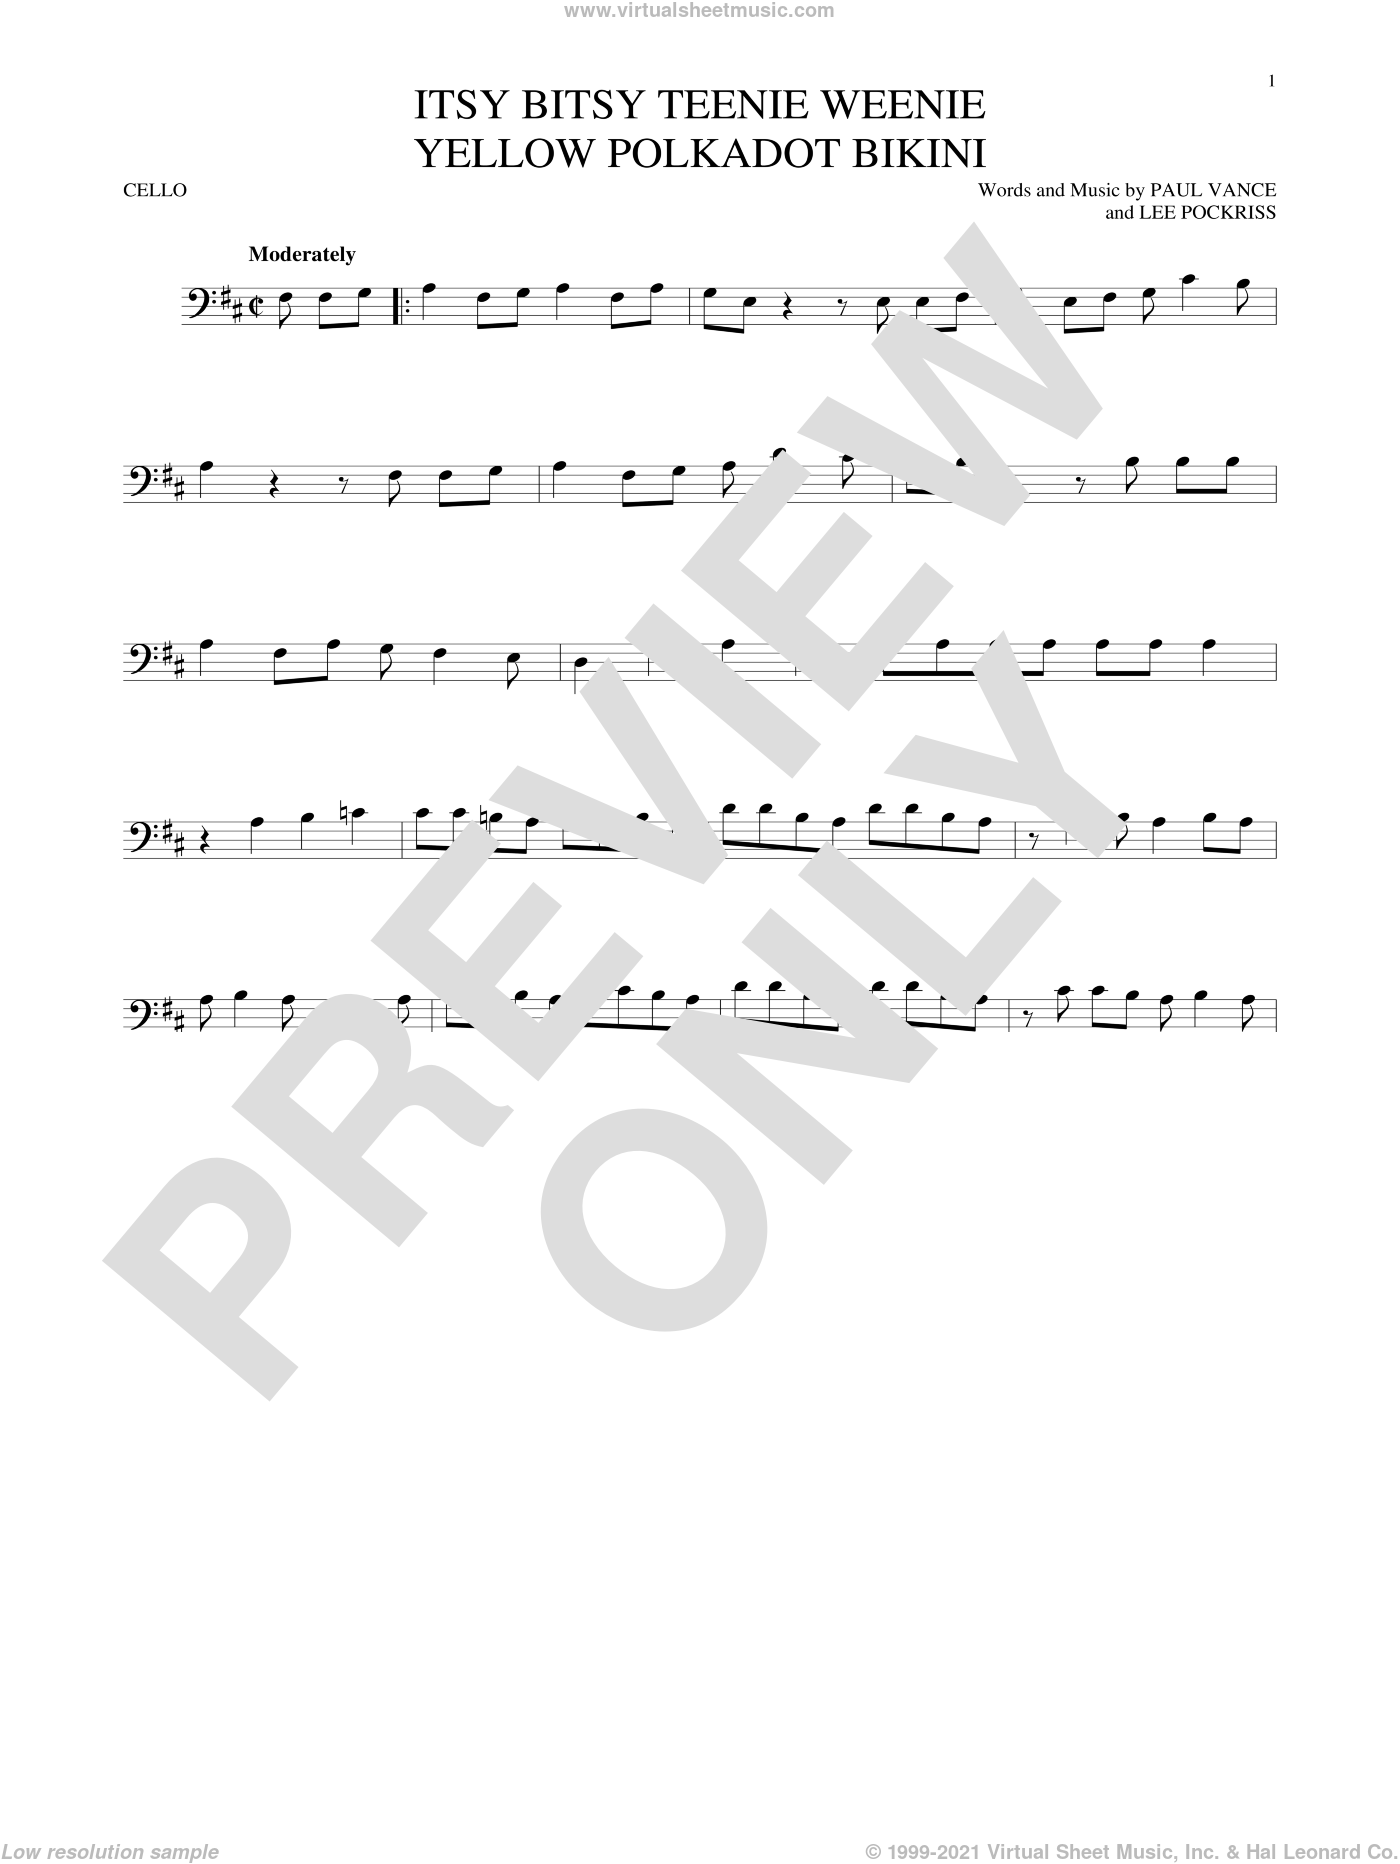 Itsy Bitsy Teenie Weenie Yellow Polkadot Bikini sheet music for cello solo by Brian Hyland, Lee Pockriss and Paul Vance, intermediate skill level